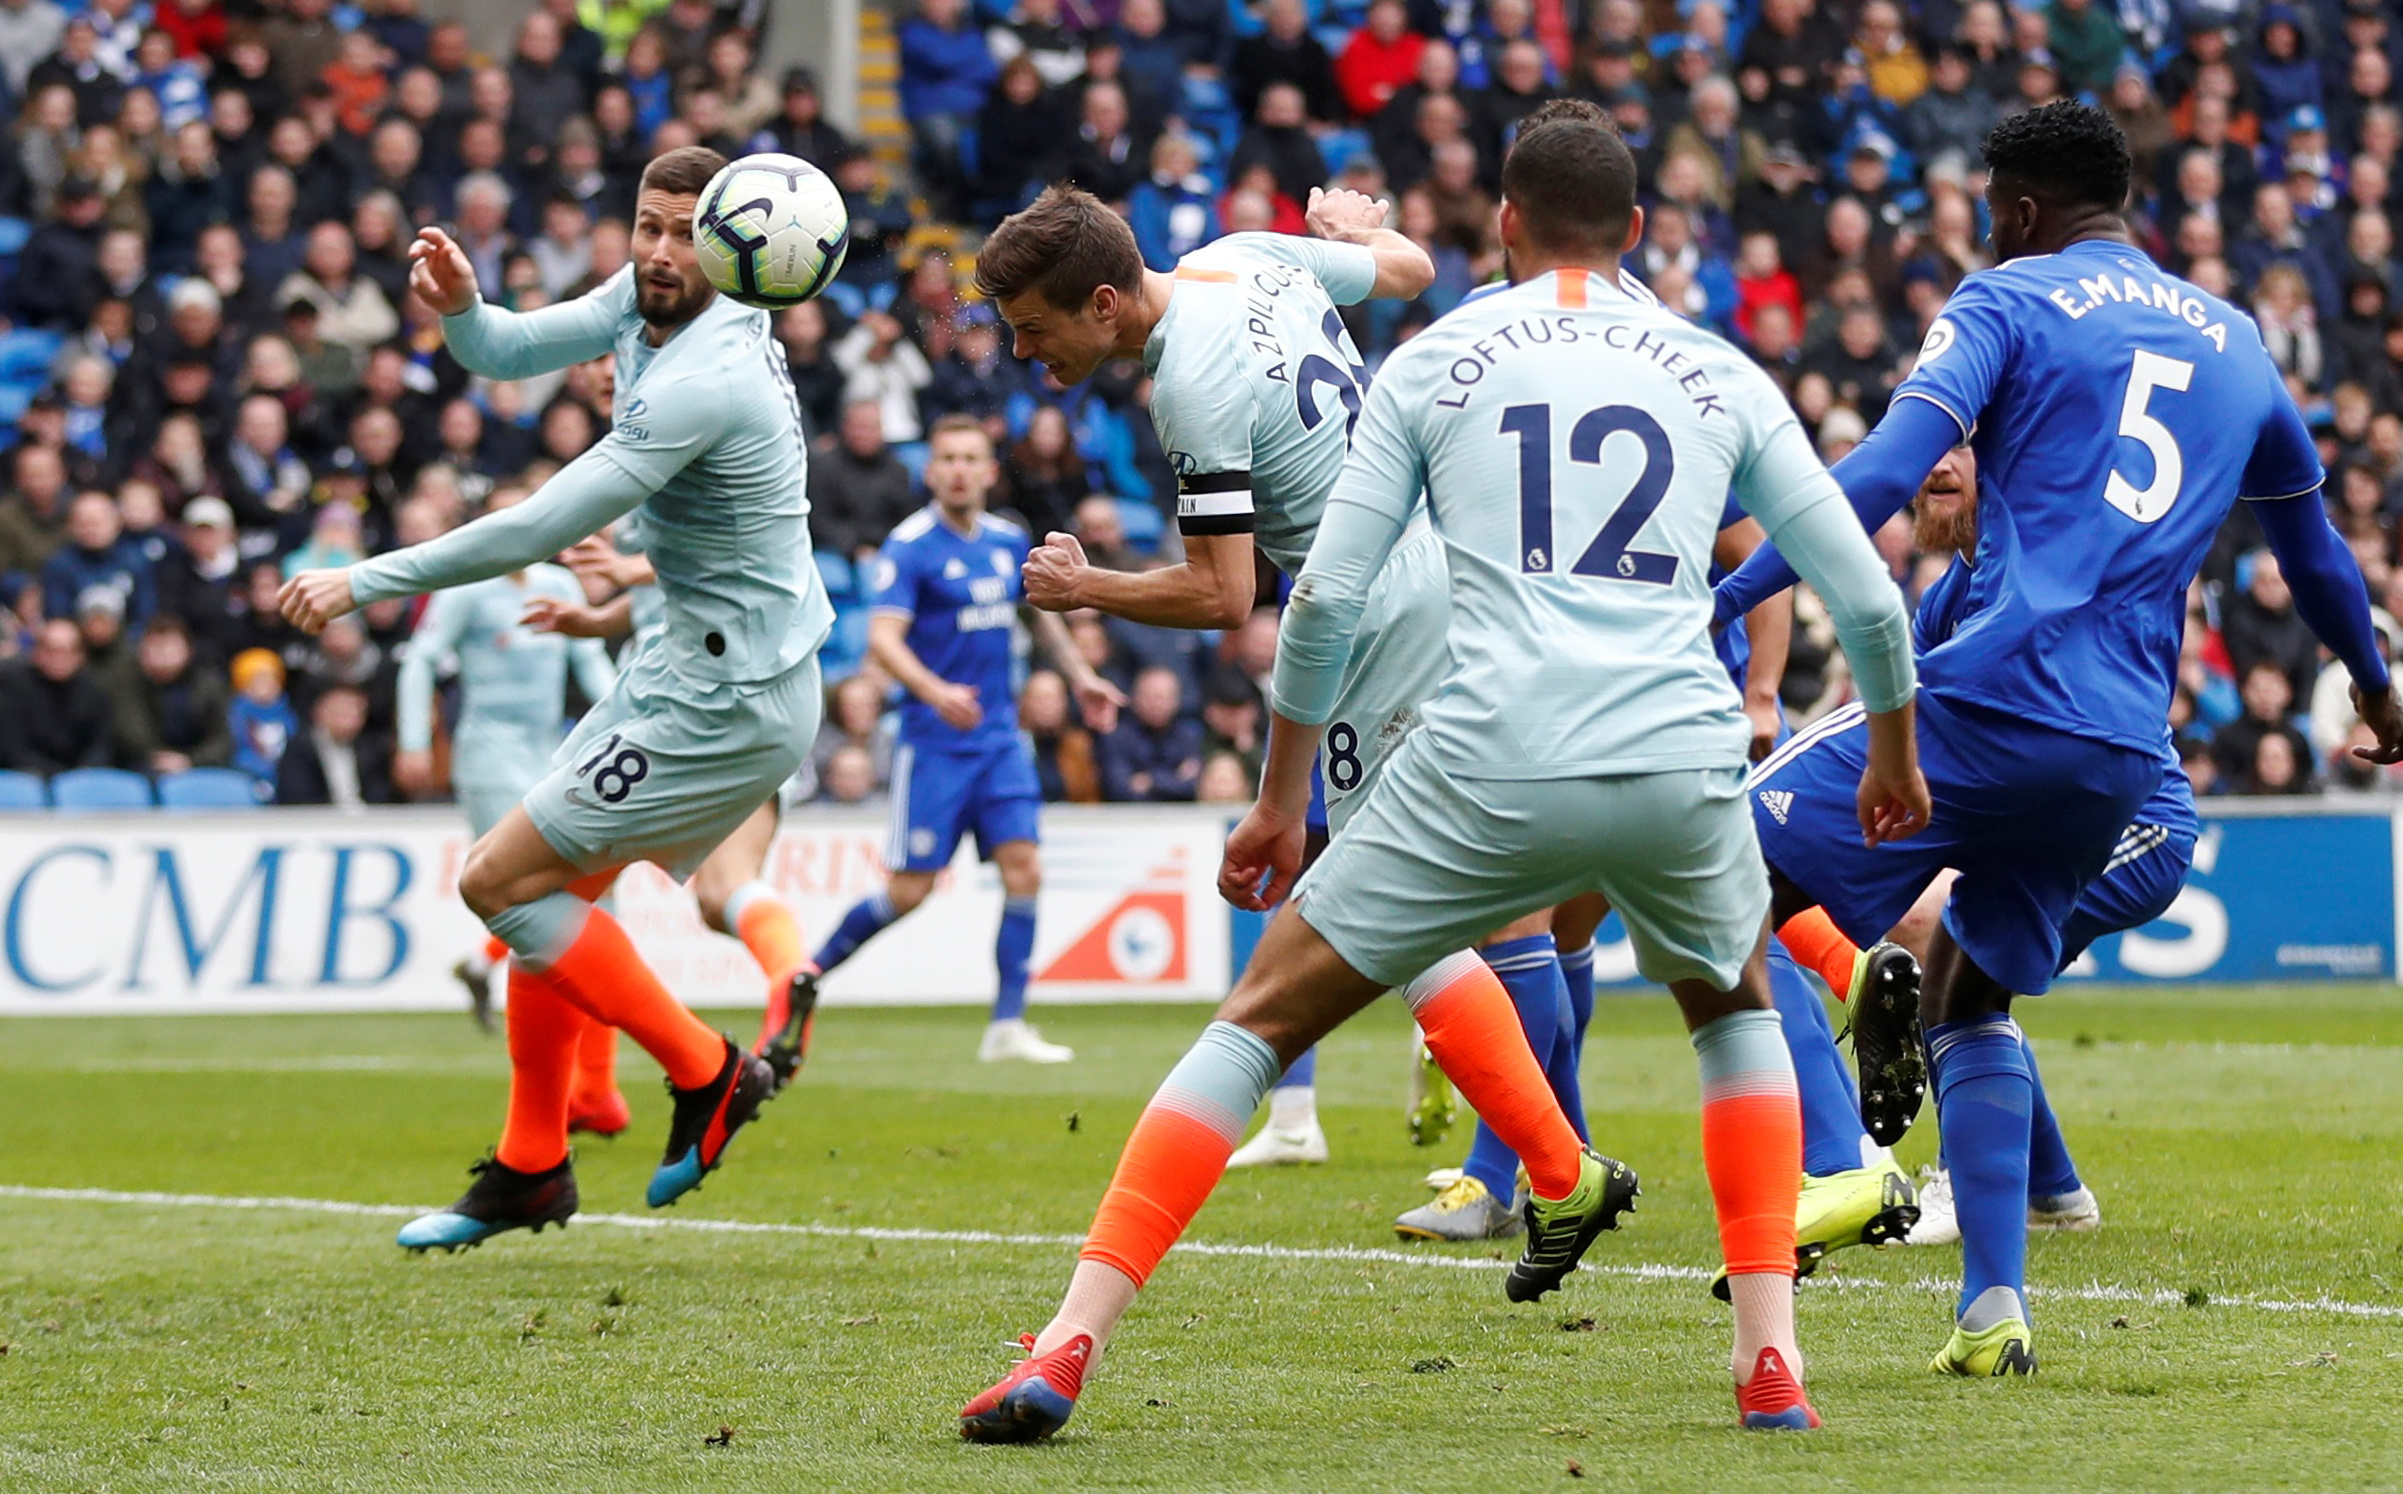 Late goals hand Chelsea thrilling win over unlucky Cardiff | The